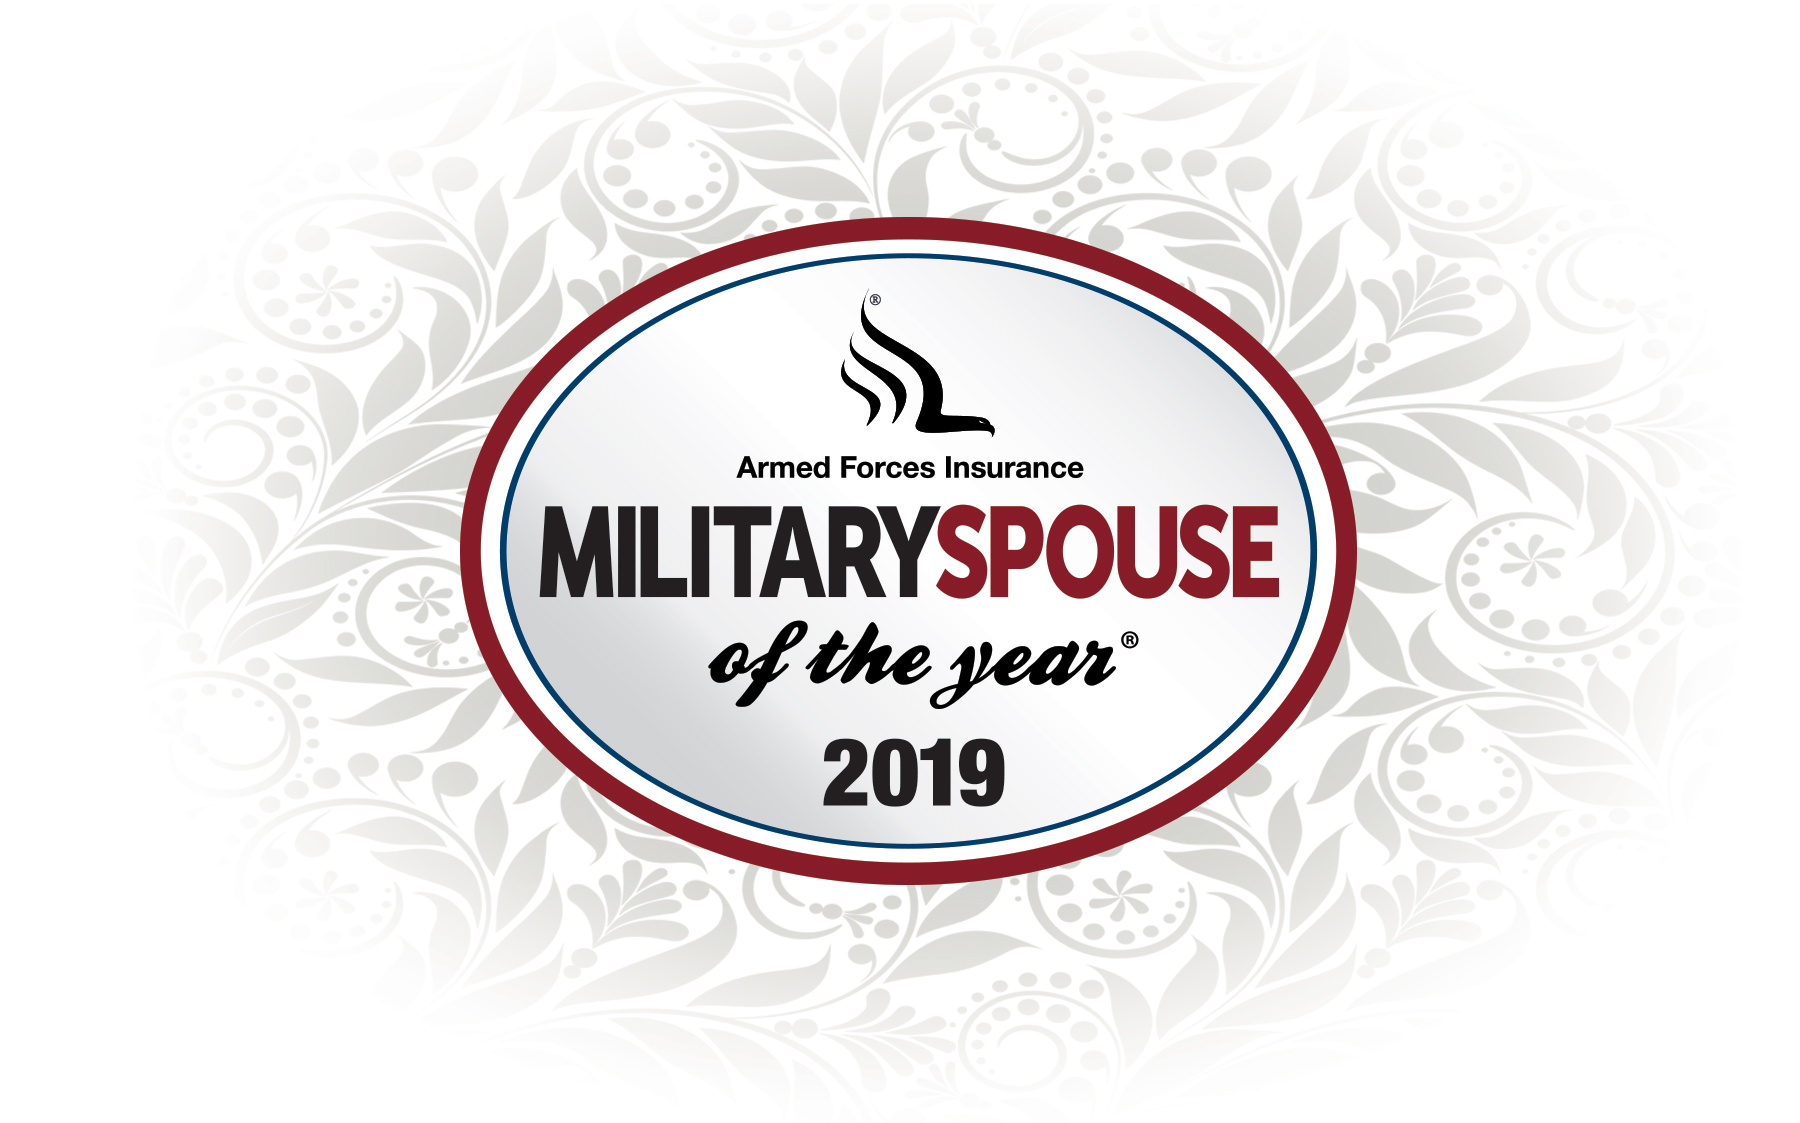 2019 Armed Forces Insurance Military Spouse of the Year Logo